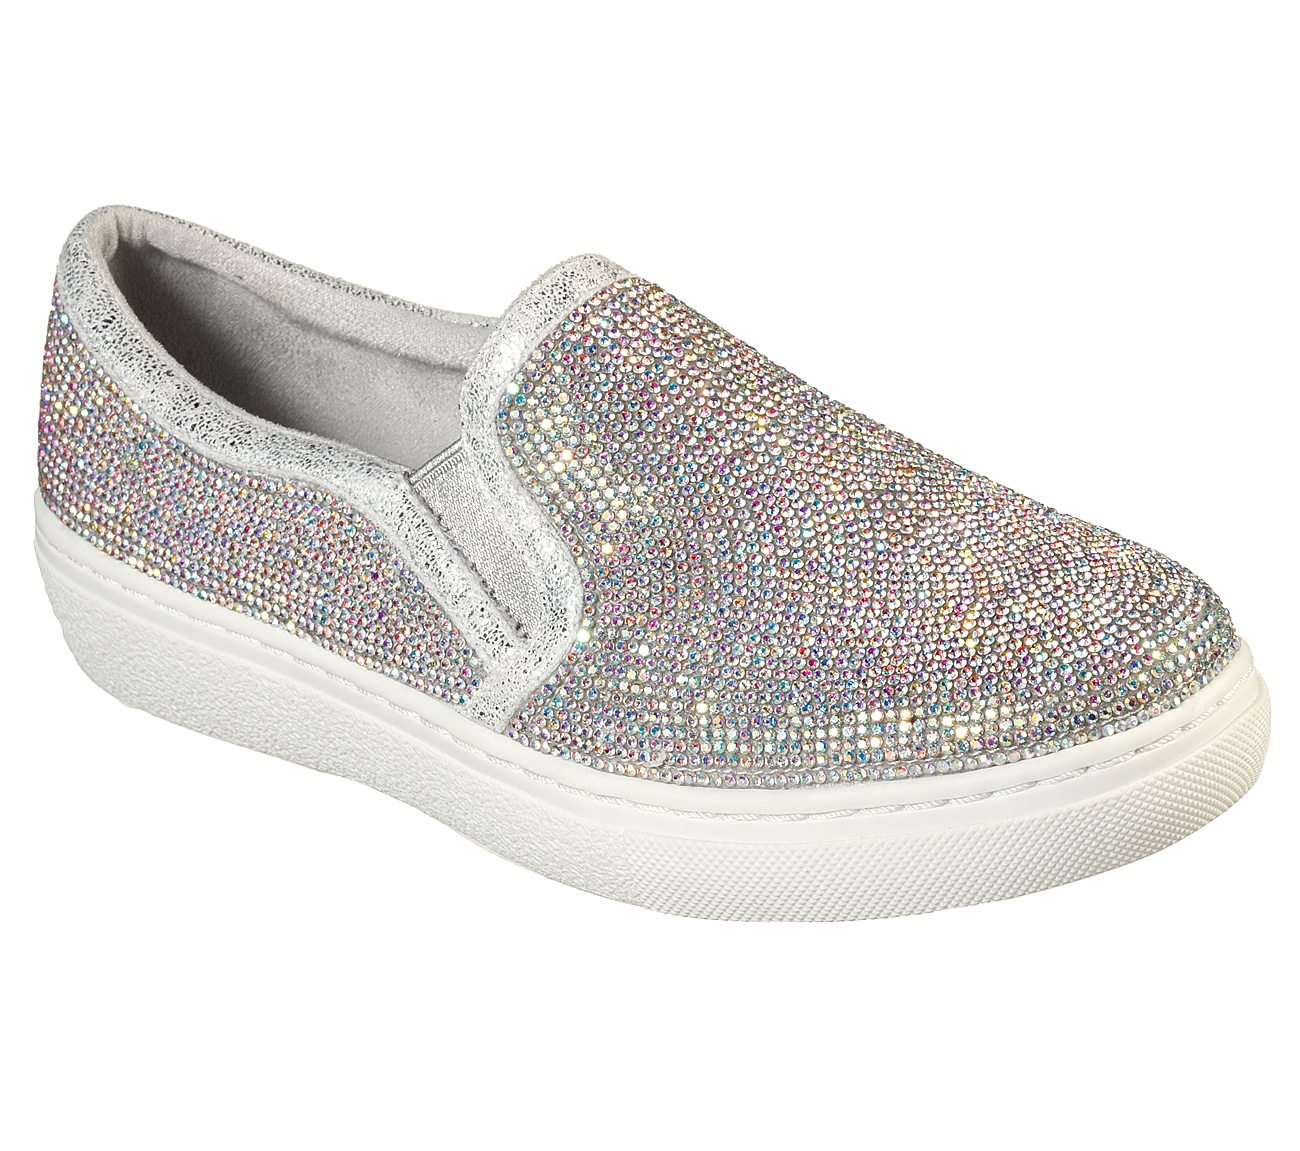 16 Best Sketchers with Bling images in 2020 | Shoes